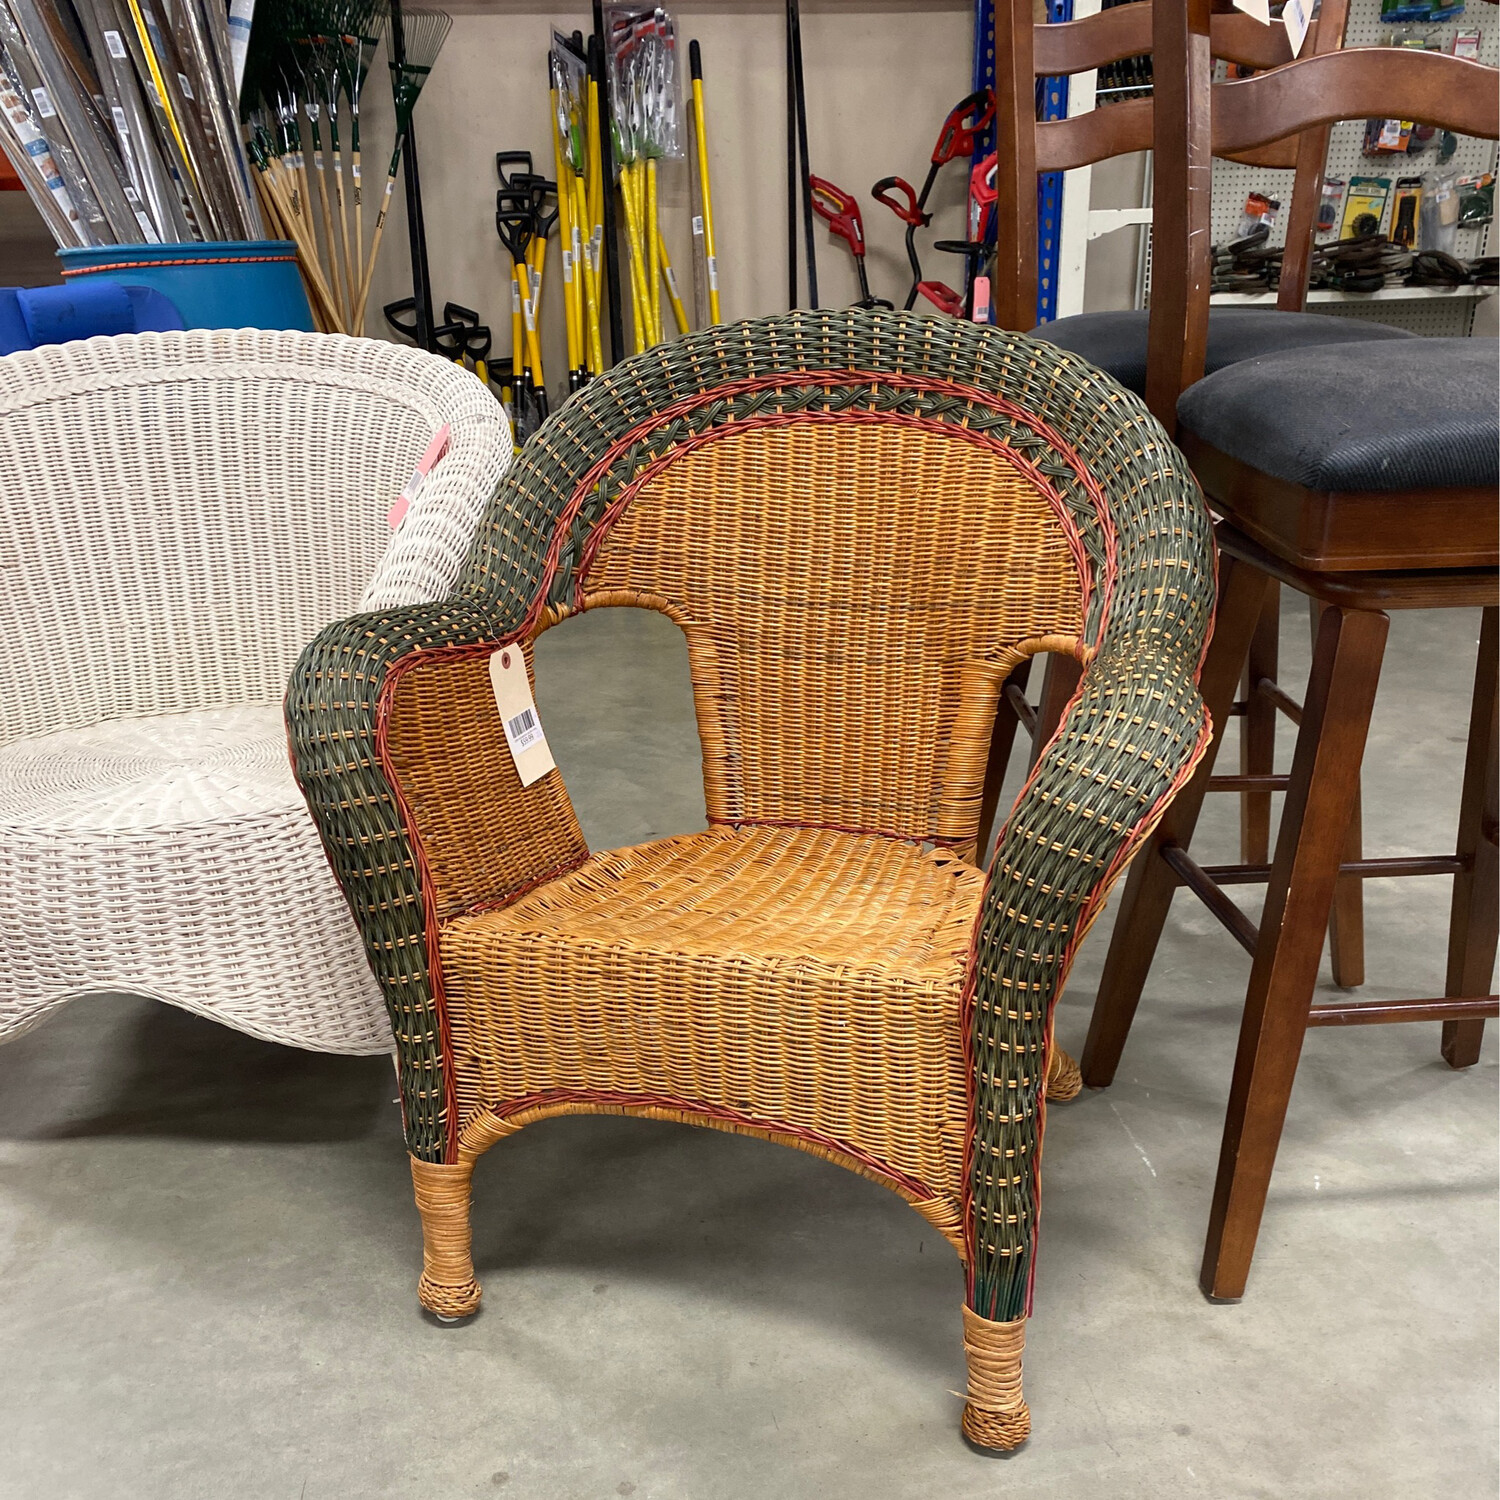 GREEN/RED/BROWN WICKER CHAIR